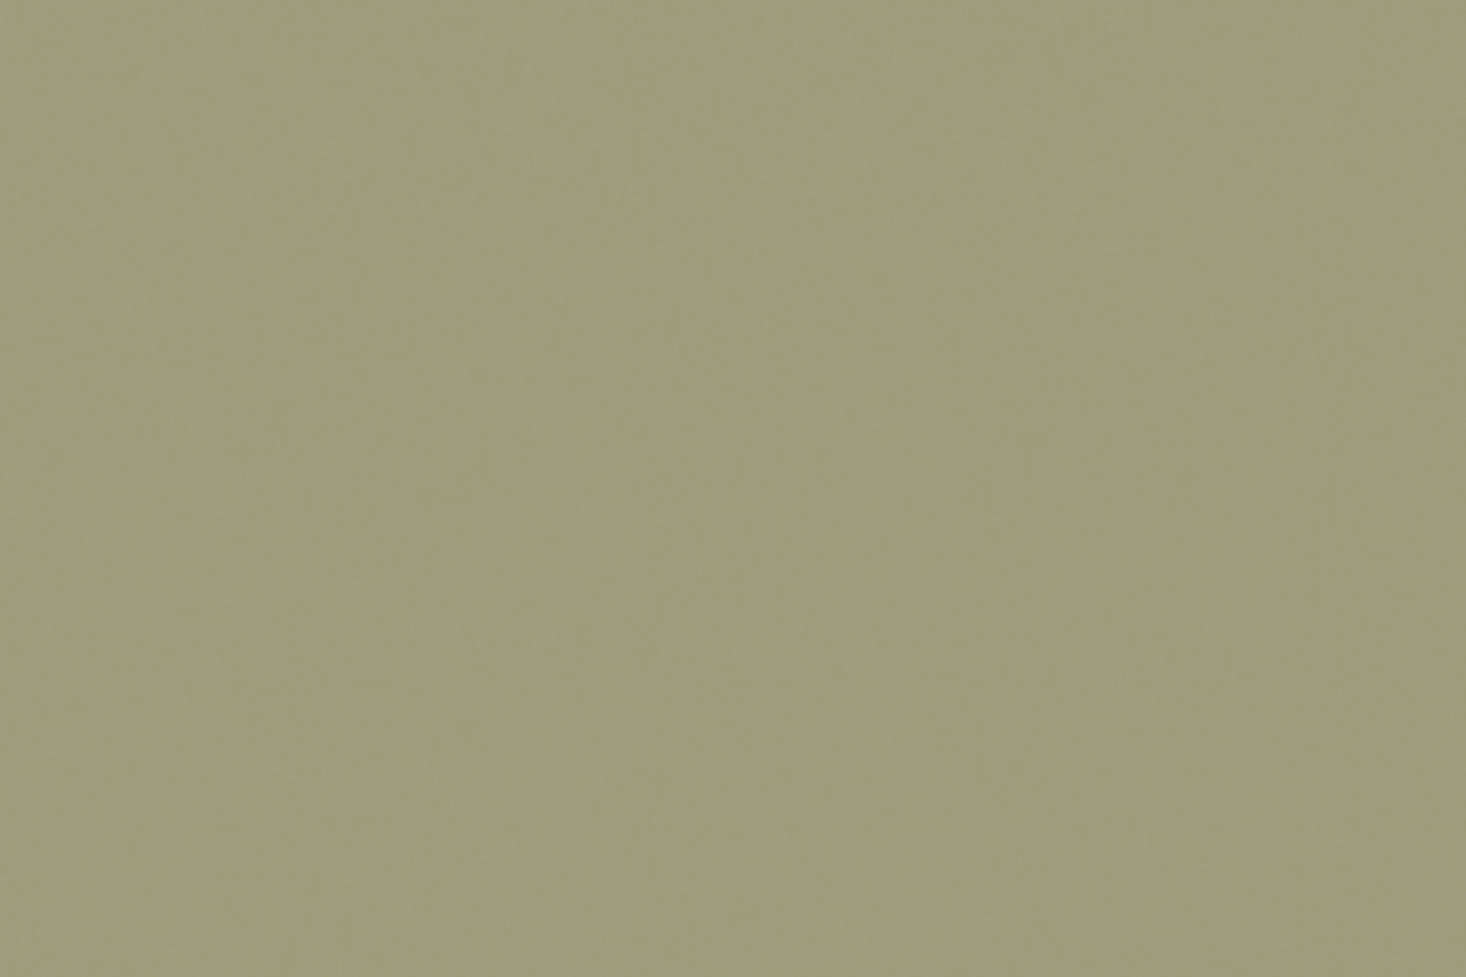 The walls are painted in a custom sage green color that's similar to Little Greene Normandy Grey.